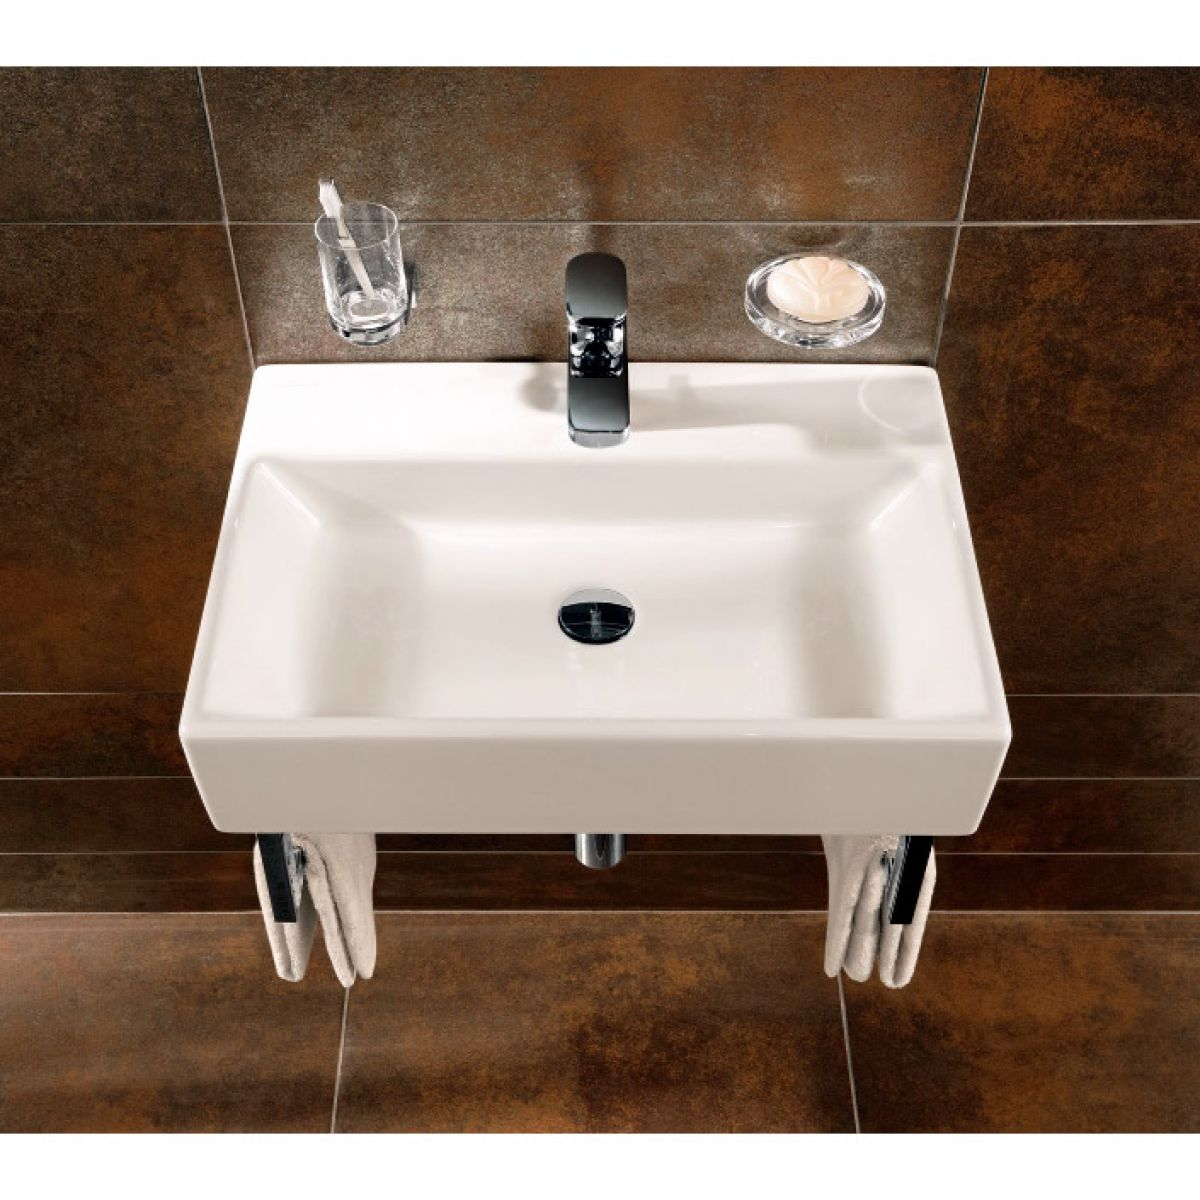 villeroy boch 500mm memento washbasin uk bathrooms. Black Bedroom Furniture Sets. Home Design Ideas